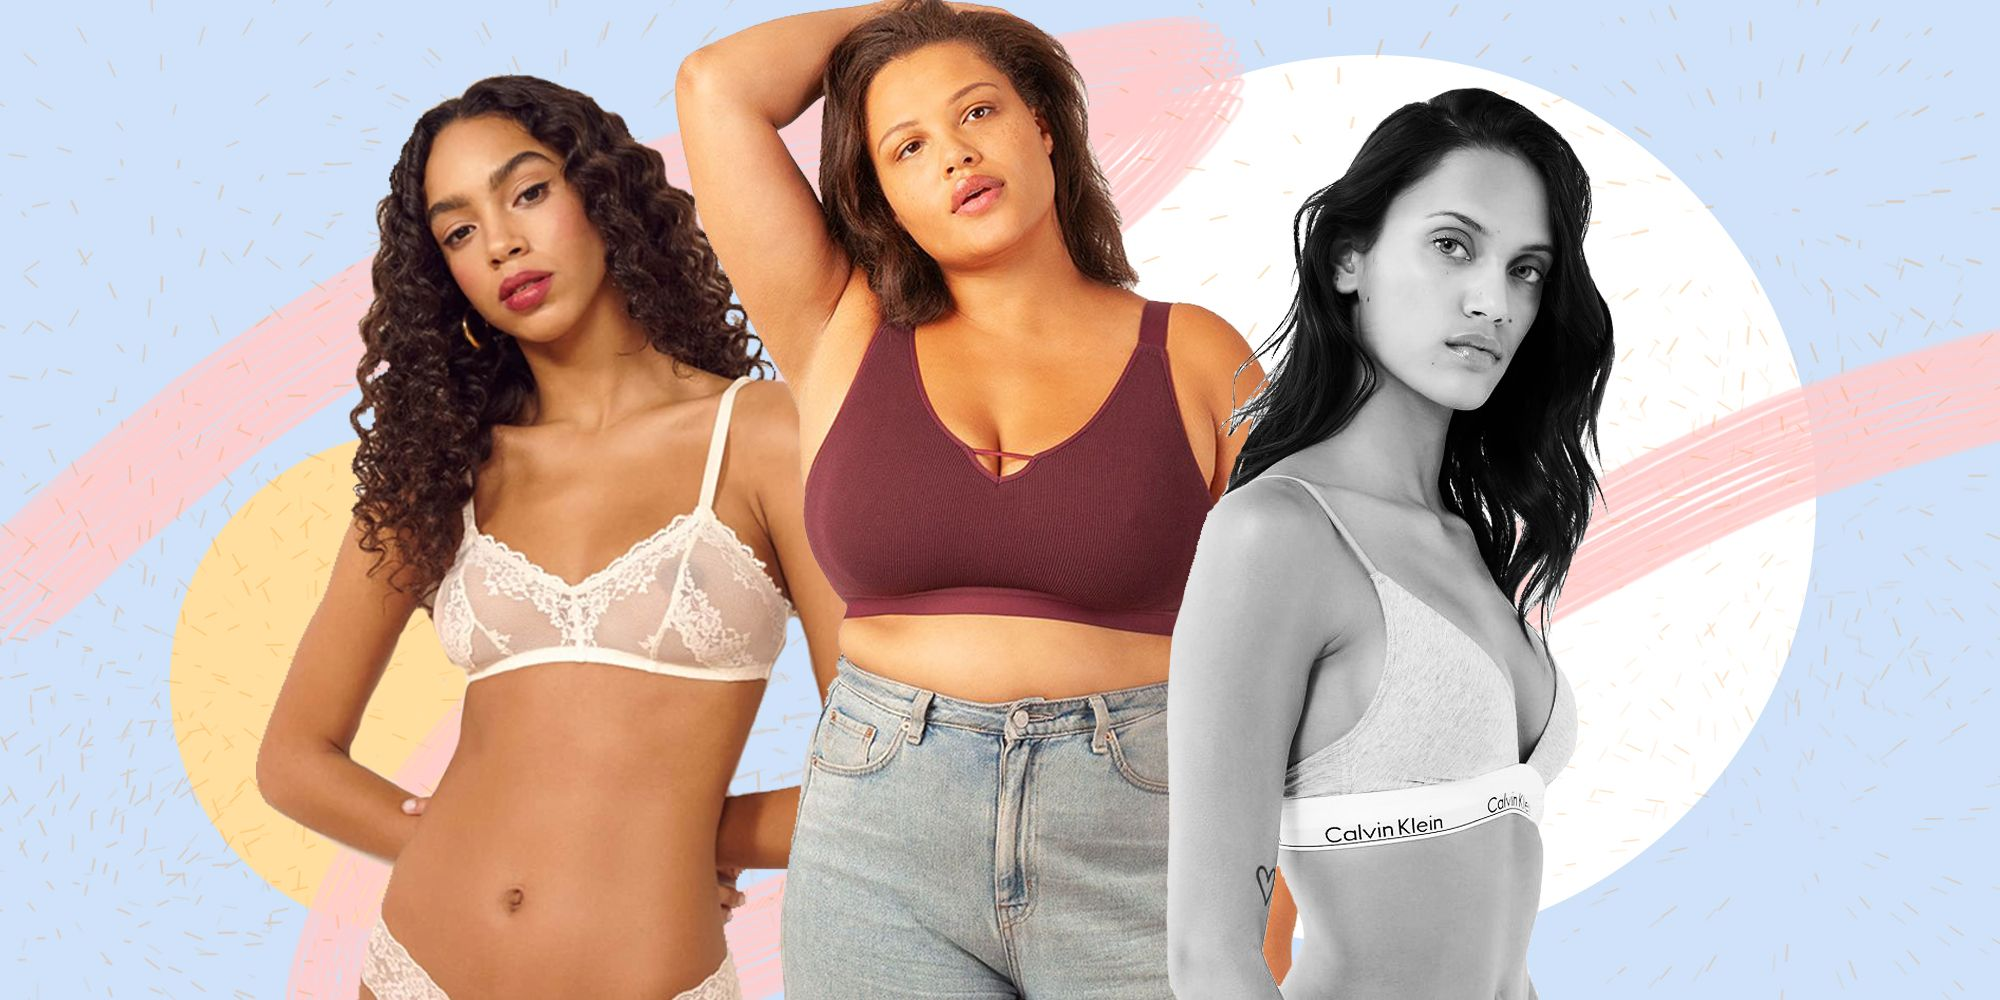 f8adcce2b Sexy Bralettes for Women - Best Bralettes for Big Boobs and Period Boobs